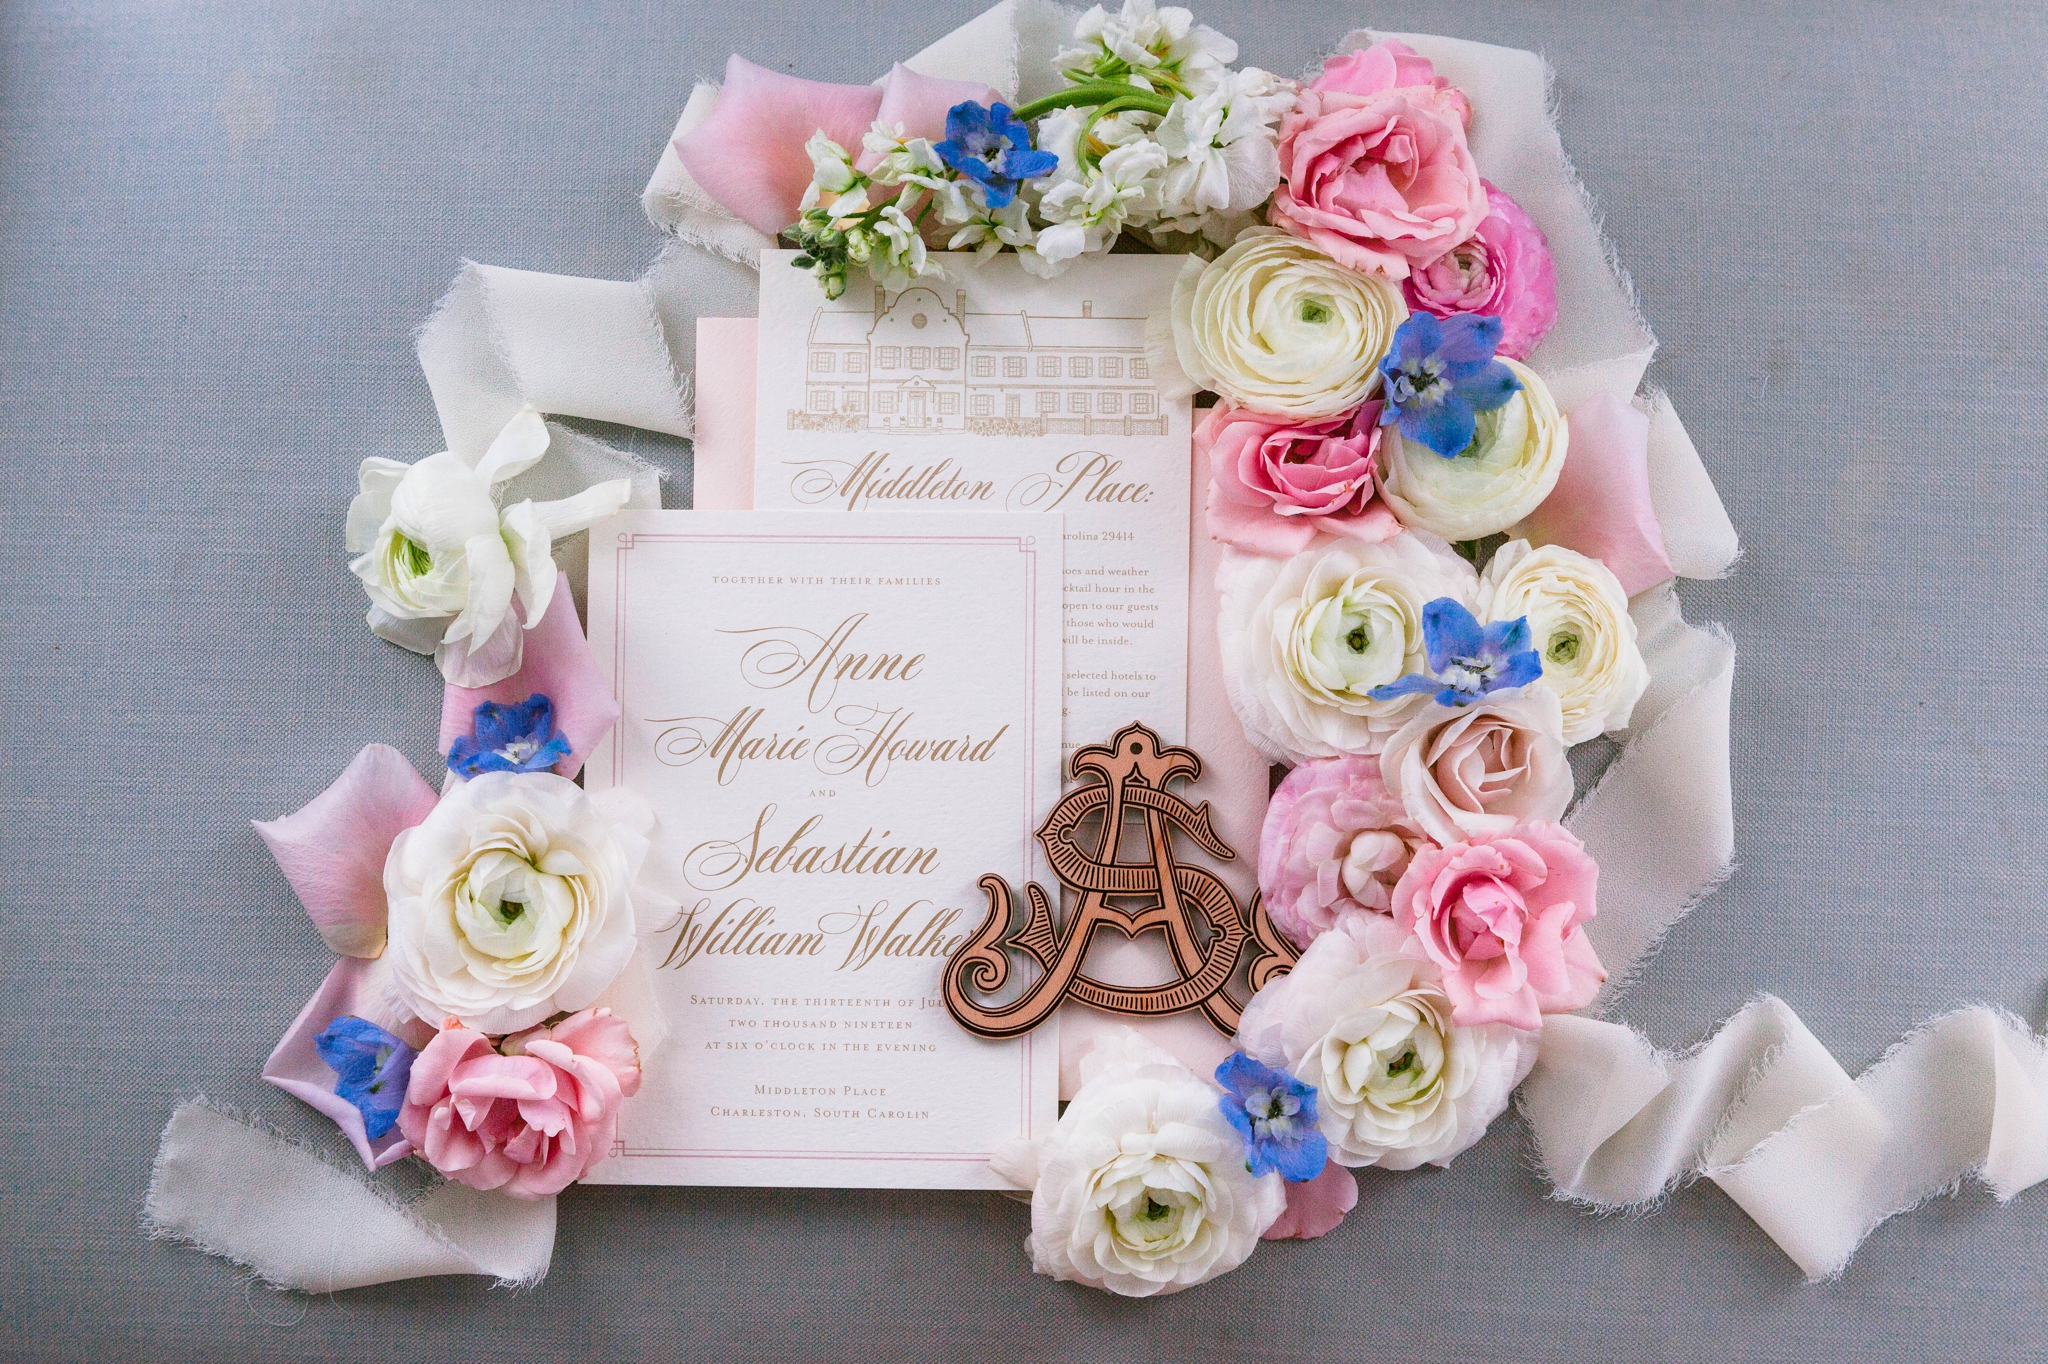 Wedding Invitation Flat Lay with lots of pastel flowers in pink and blue - Blush and Gold Wedding Inspiration - Honolulu, Oahu, Hawaii Wedding Photographer - Johanna Dye Photography - Martha Stewart Weddings - Style Me Pretty